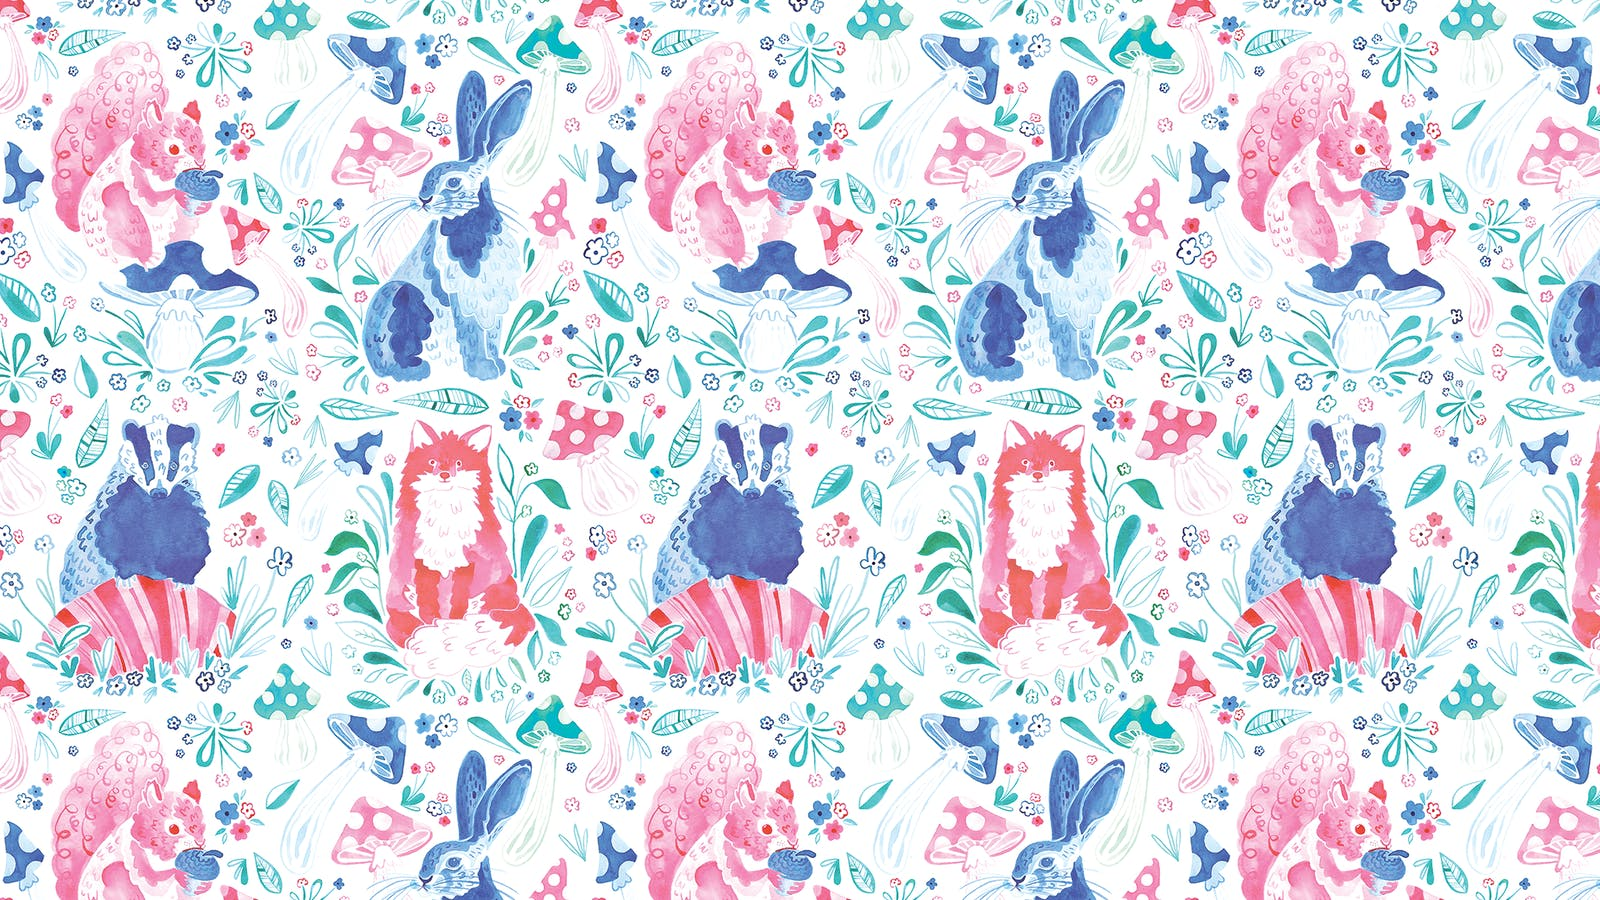 Lick x Franki Barber Woodland Animals 01 pink and blue children's wallpaper